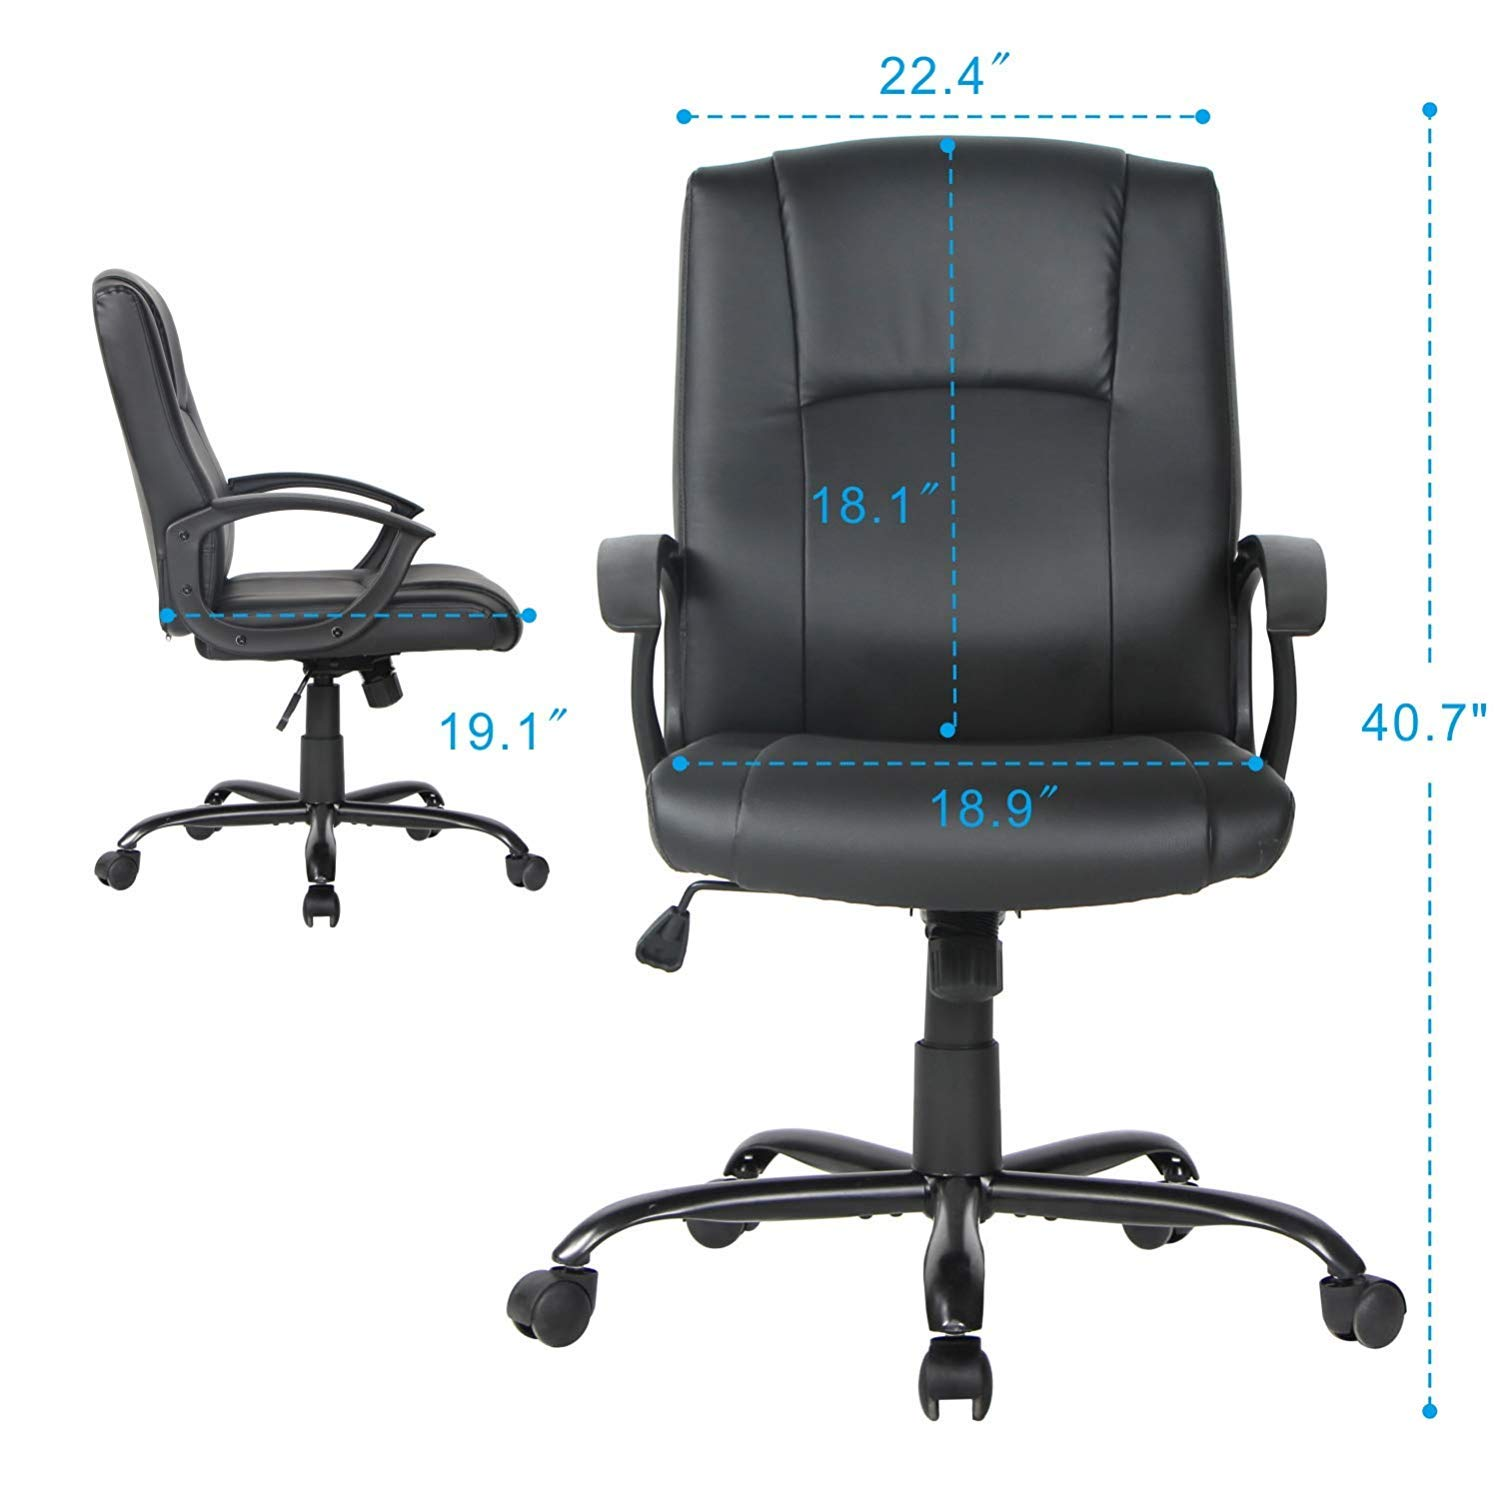 Smugdesk Office Ergonomic Office Chair Executive Bonded Leather Computer Chair, Black by Smugdesk (Image #2)